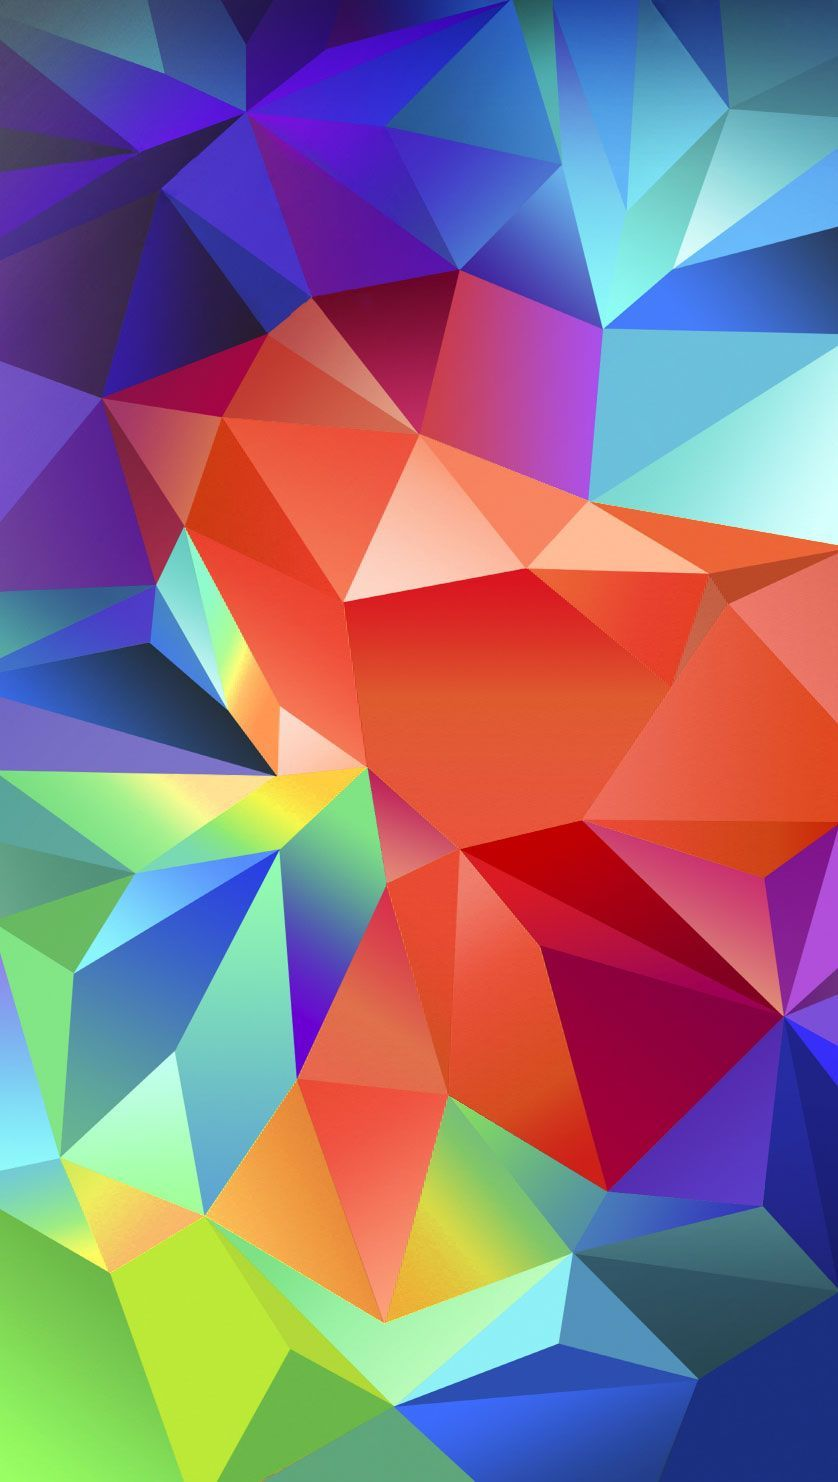 Samsung Galaxy S5 Wallpapers Top Free Samsung Galaxy S5 Backgrounds Wallpaperaccess